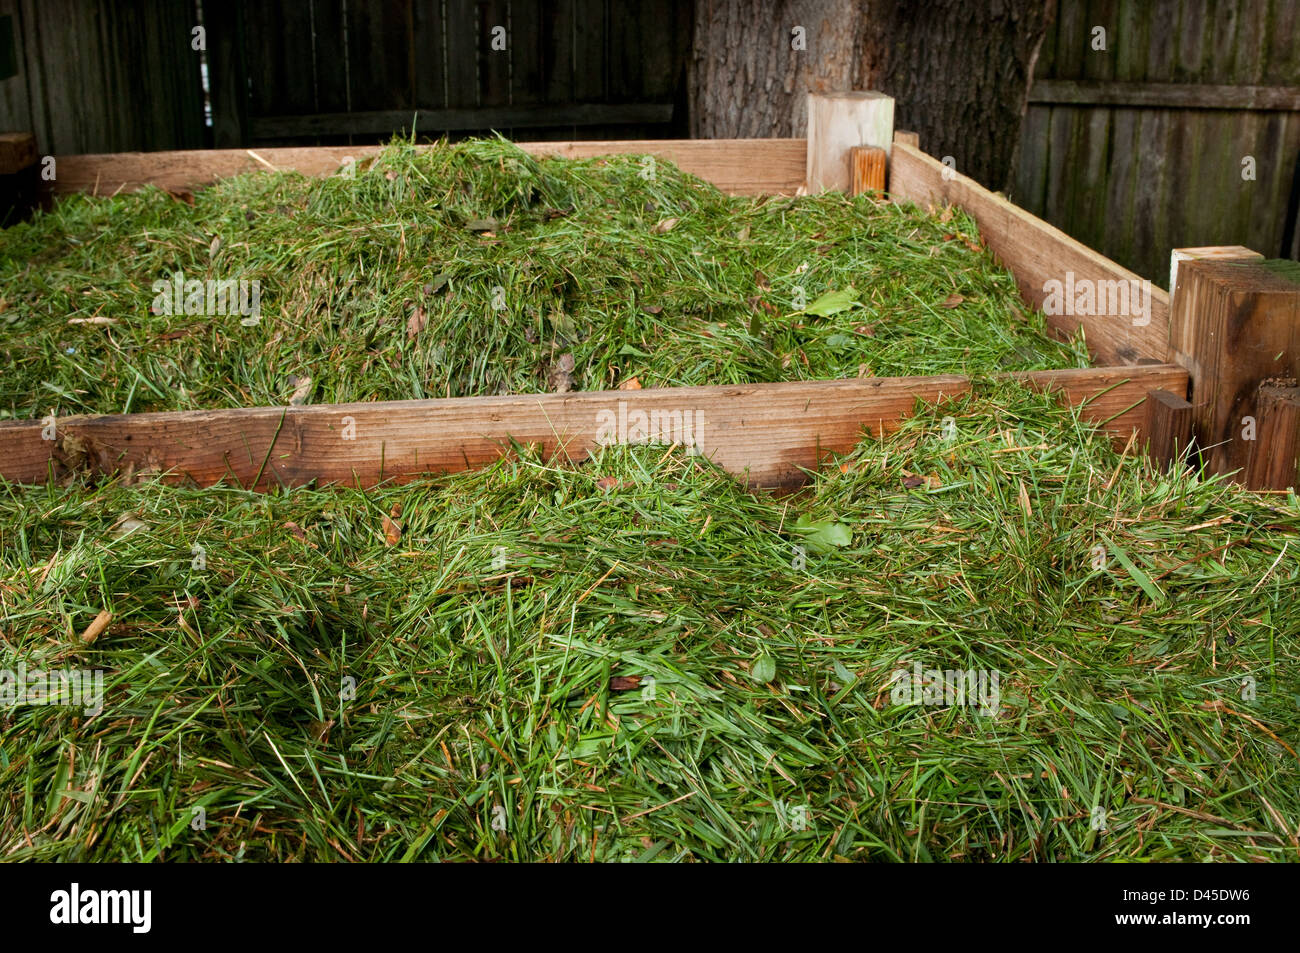 fresh cut lawn clippings piled in a compost bin - Stock Image